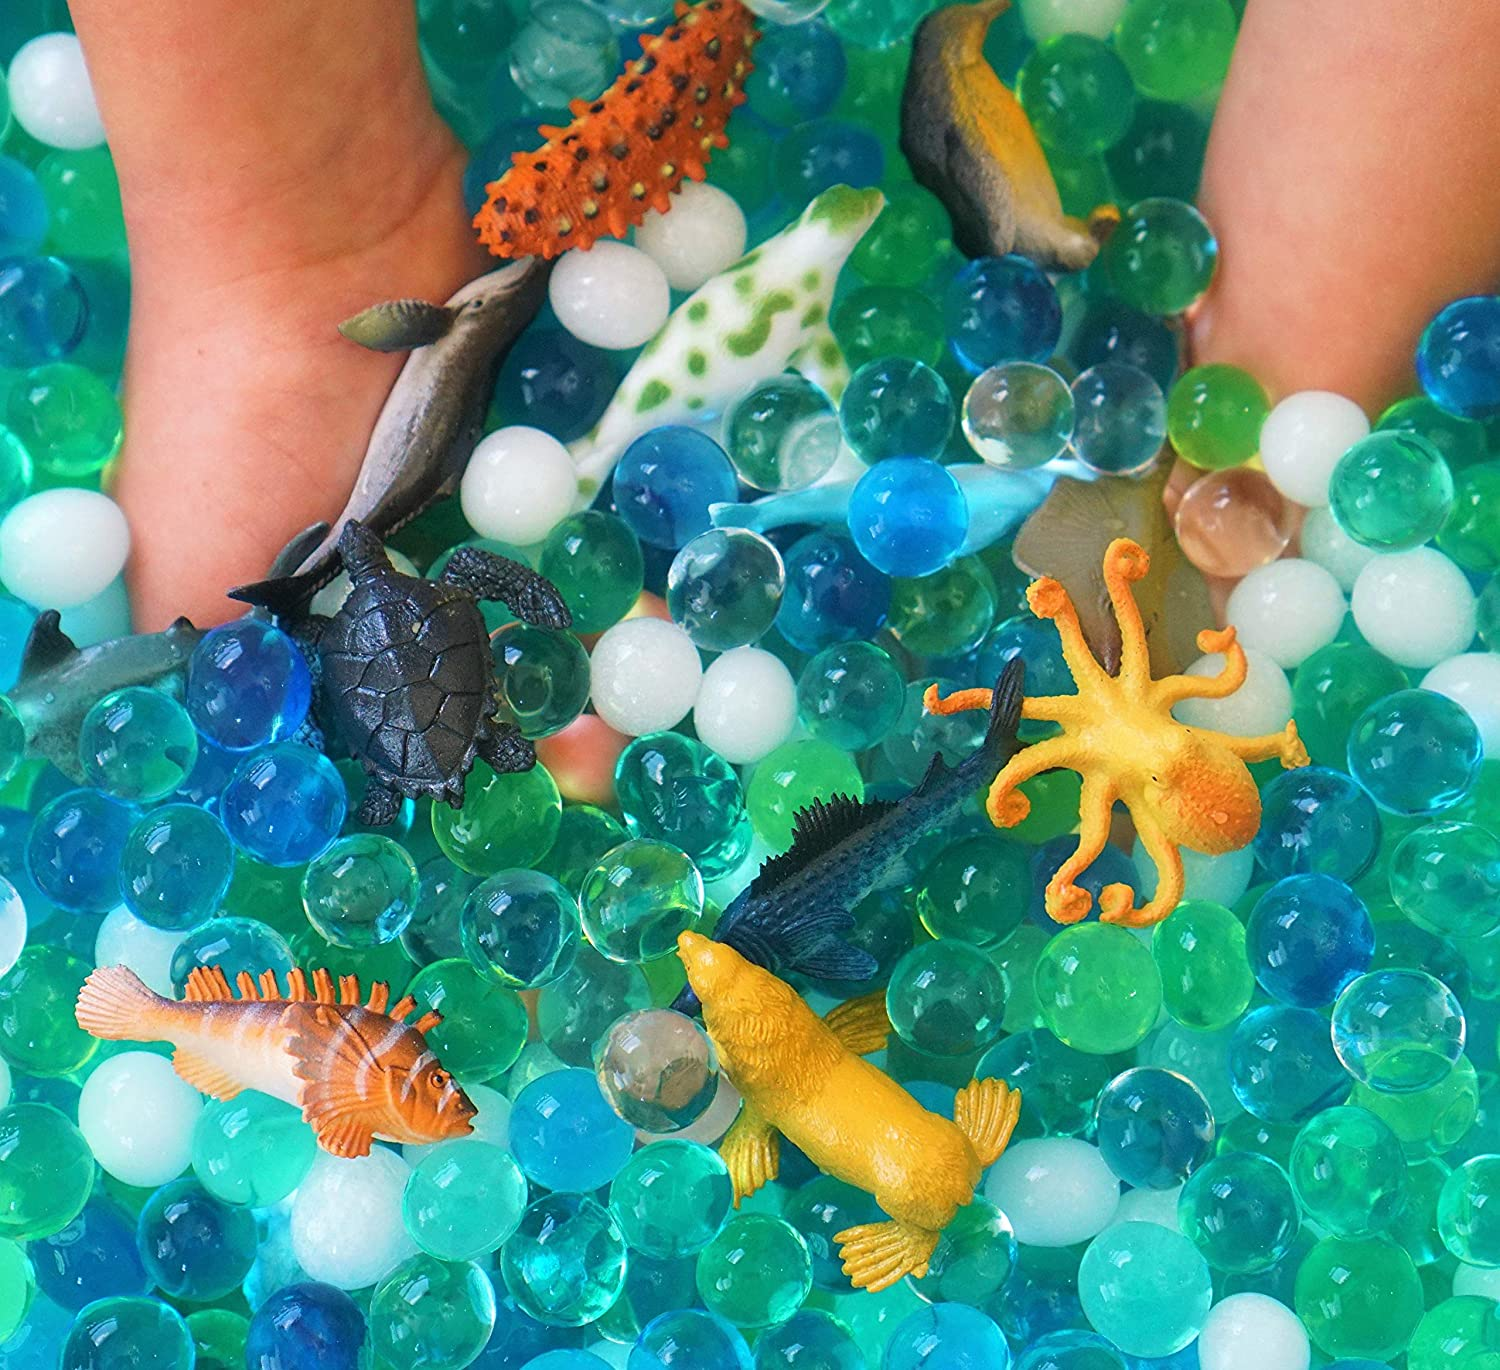 Dew Drops Water Beads Ocean Explorers Tactile Sensory Kit Sea Animal Creatures Included Great Fine Motor Skills Toy for Kids